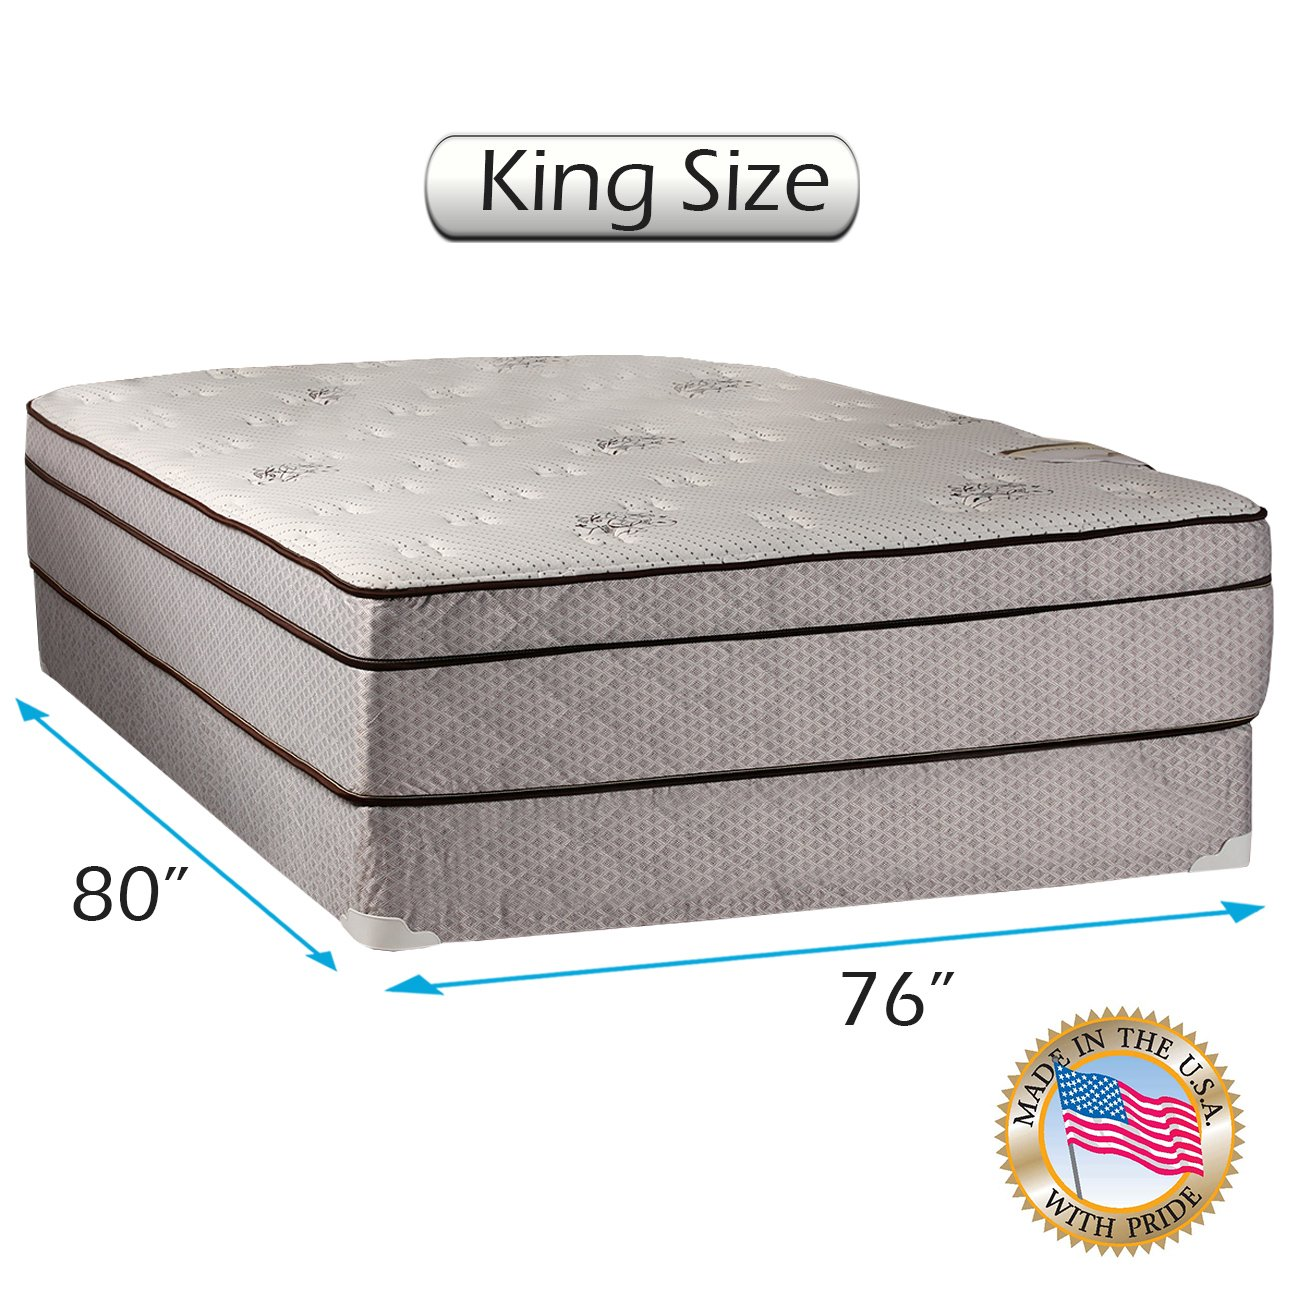 Dream Sleep Fifth Ave Plush Foam Encased Pillowtop (Eurotop) Mattress Set with Mattress Cover Protector Included - Sleep System Support, Orthopedic by Dream Solutions USA (King 76'' x80x 13'') by Dream Solutions USA